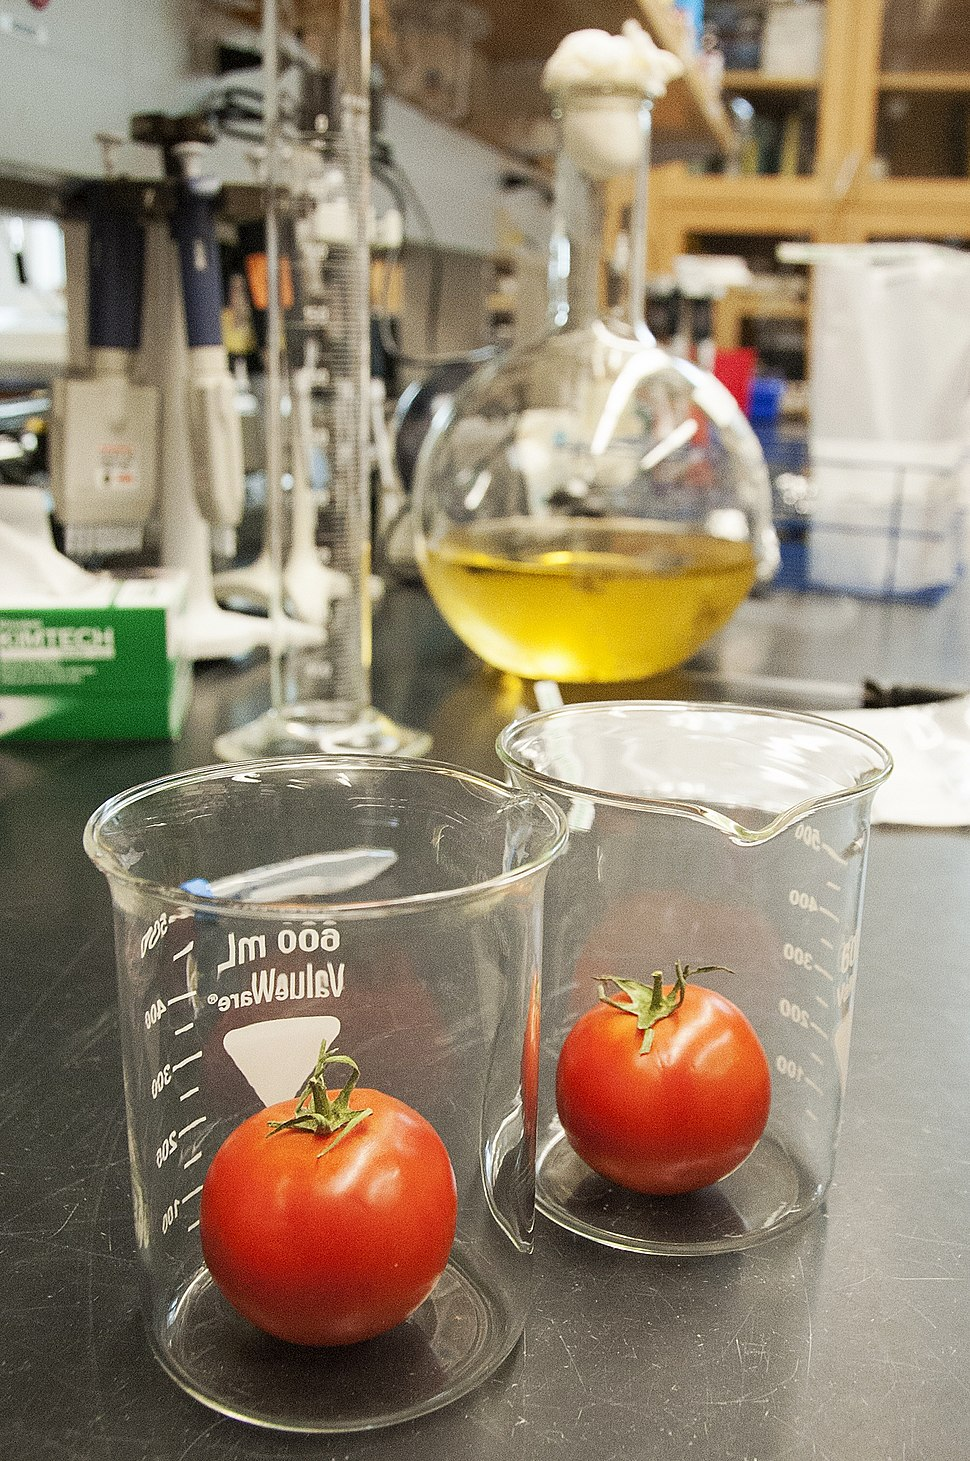 Tomato laboratory research